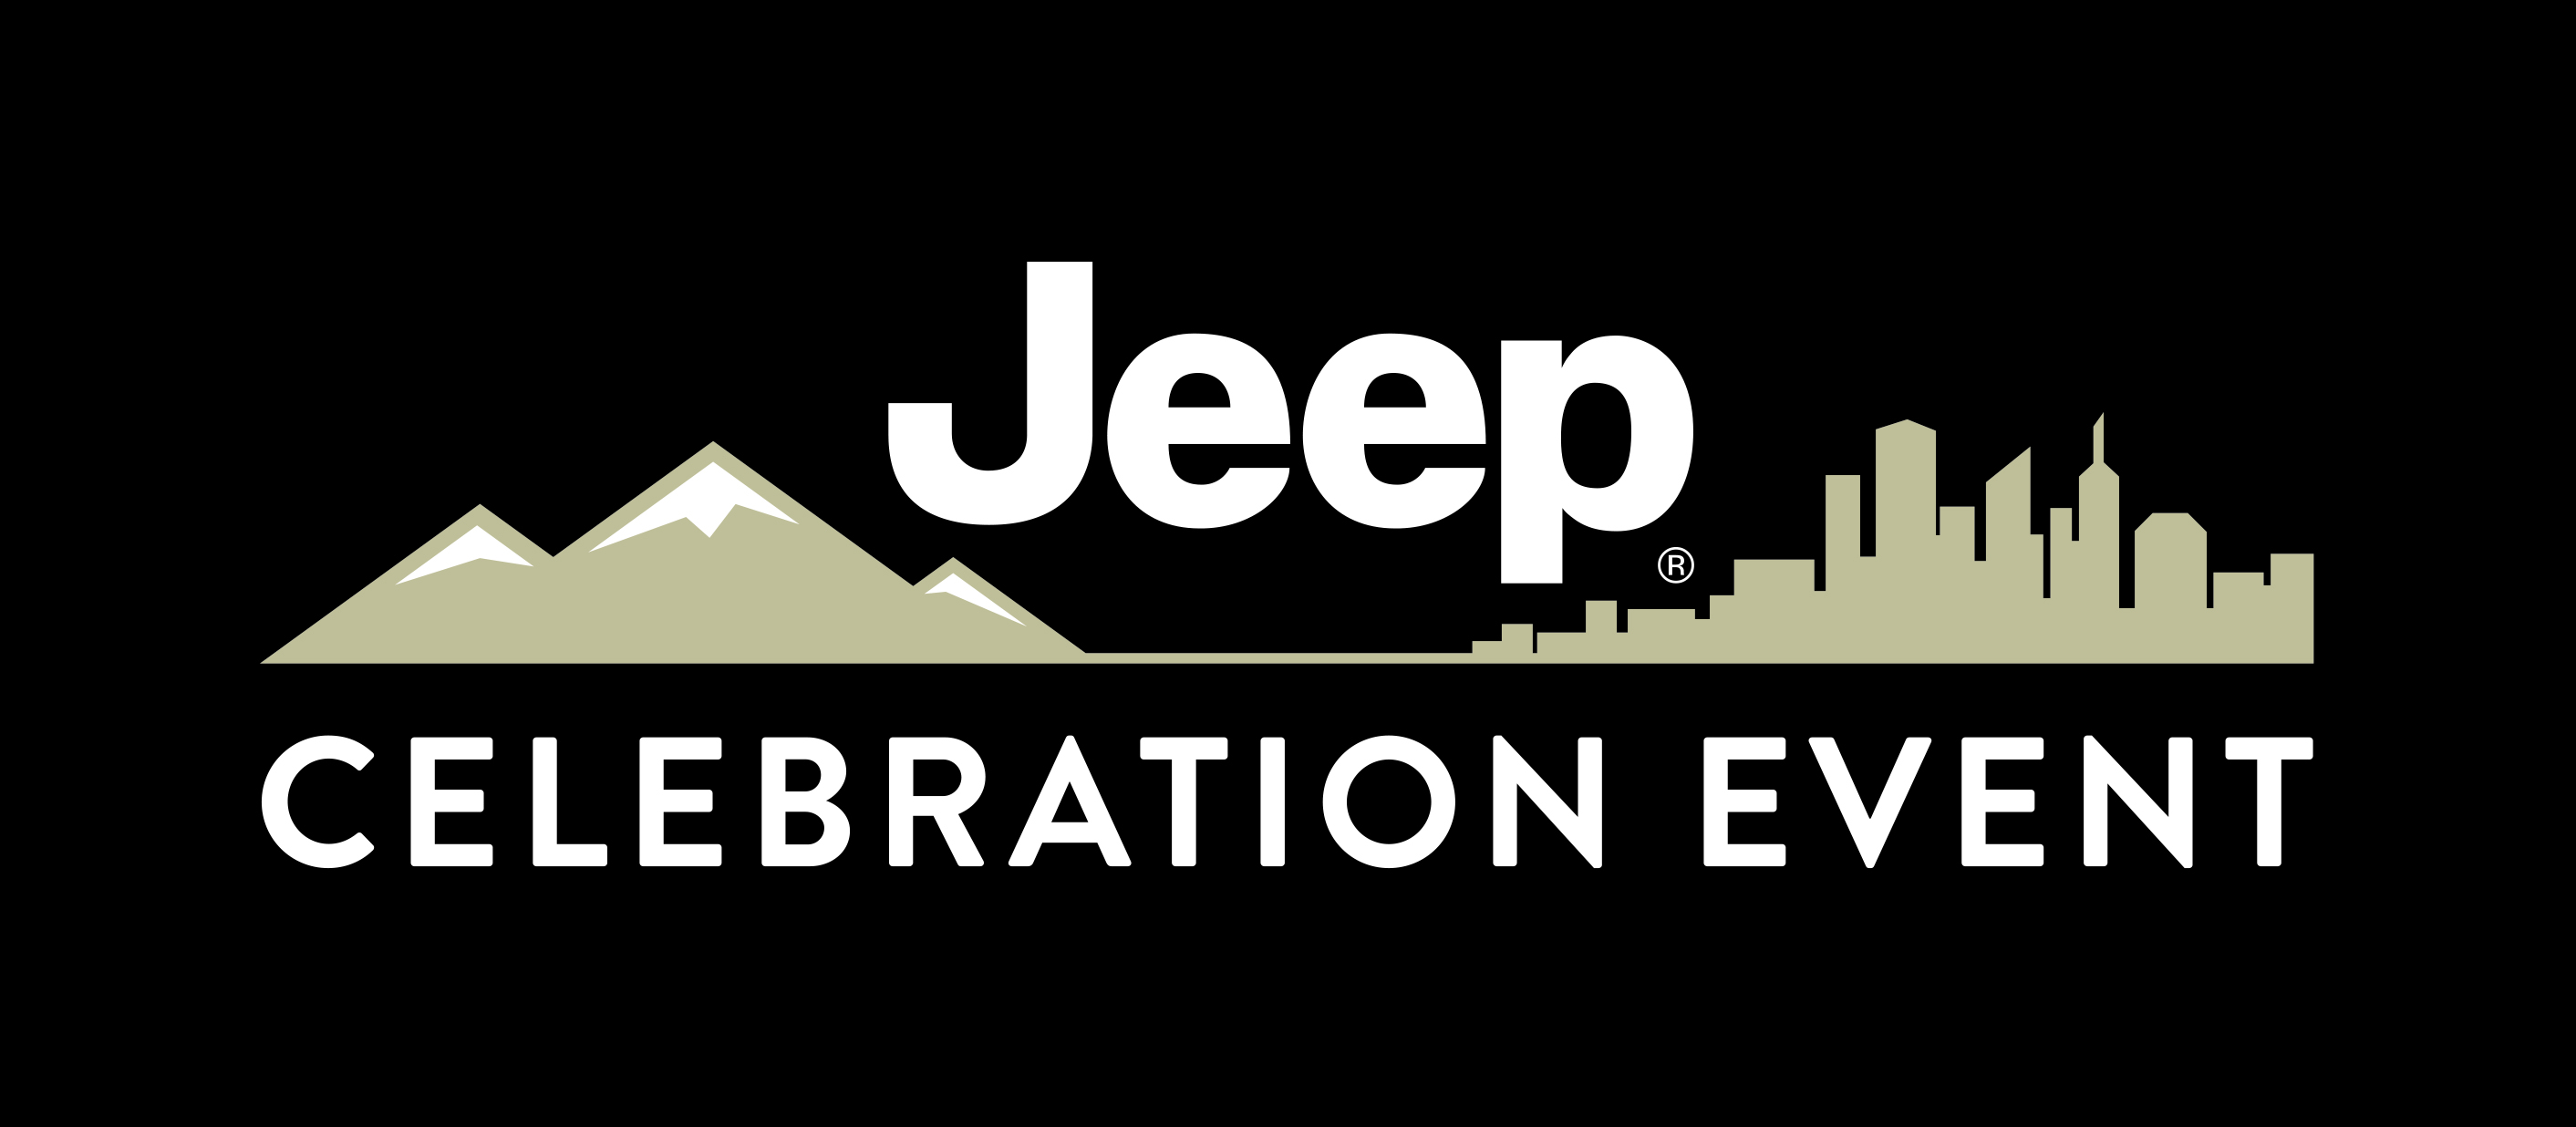 Jeep Celebration Event in Monticello, IN